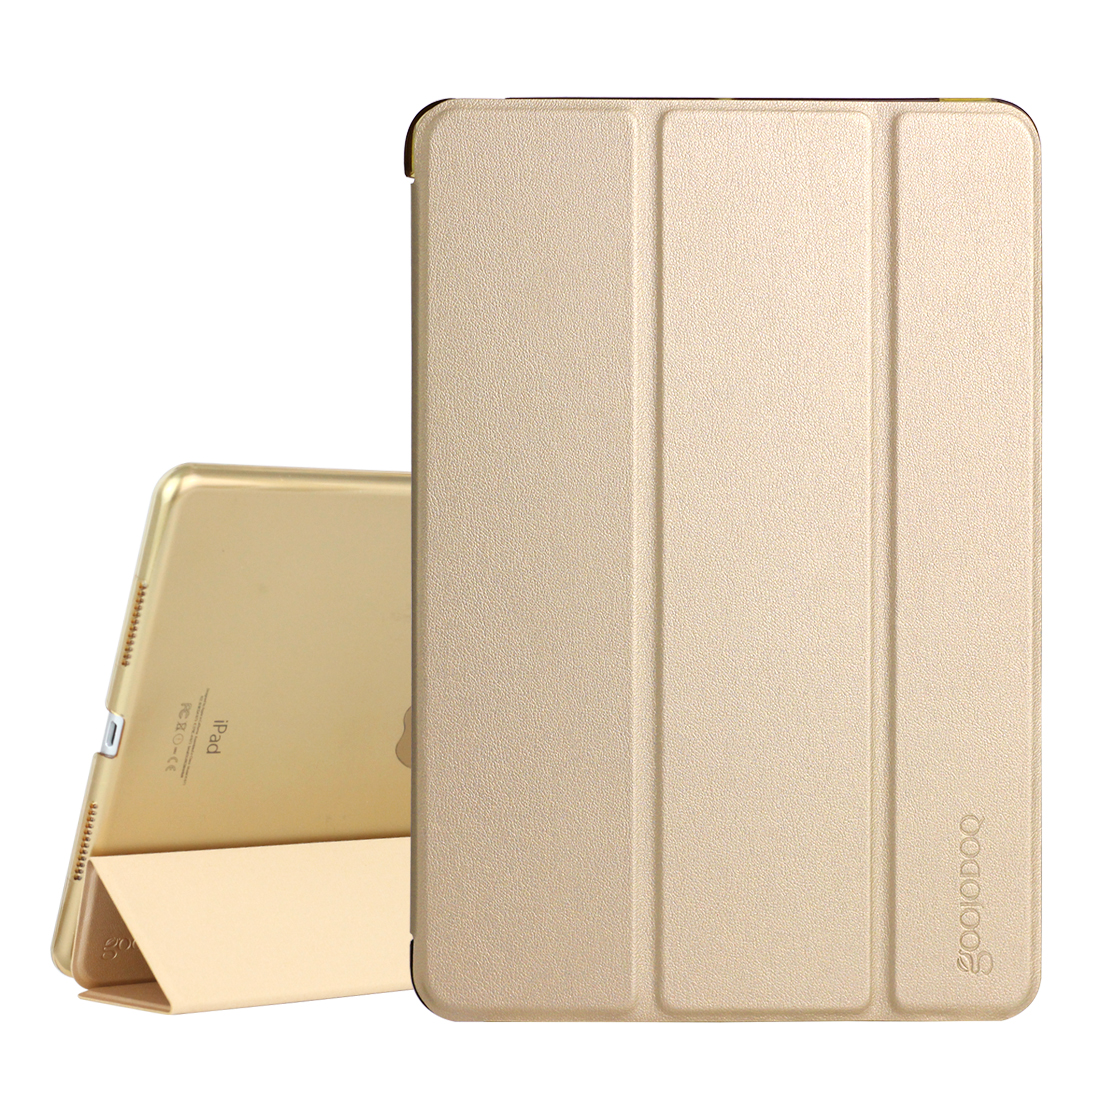 For Ipad Pro 10.5 Case 2017 New Magnetic Smart Flip Stand PU Leather Case PC Hard Back Cover For Ipad Pro 10.5 Coque